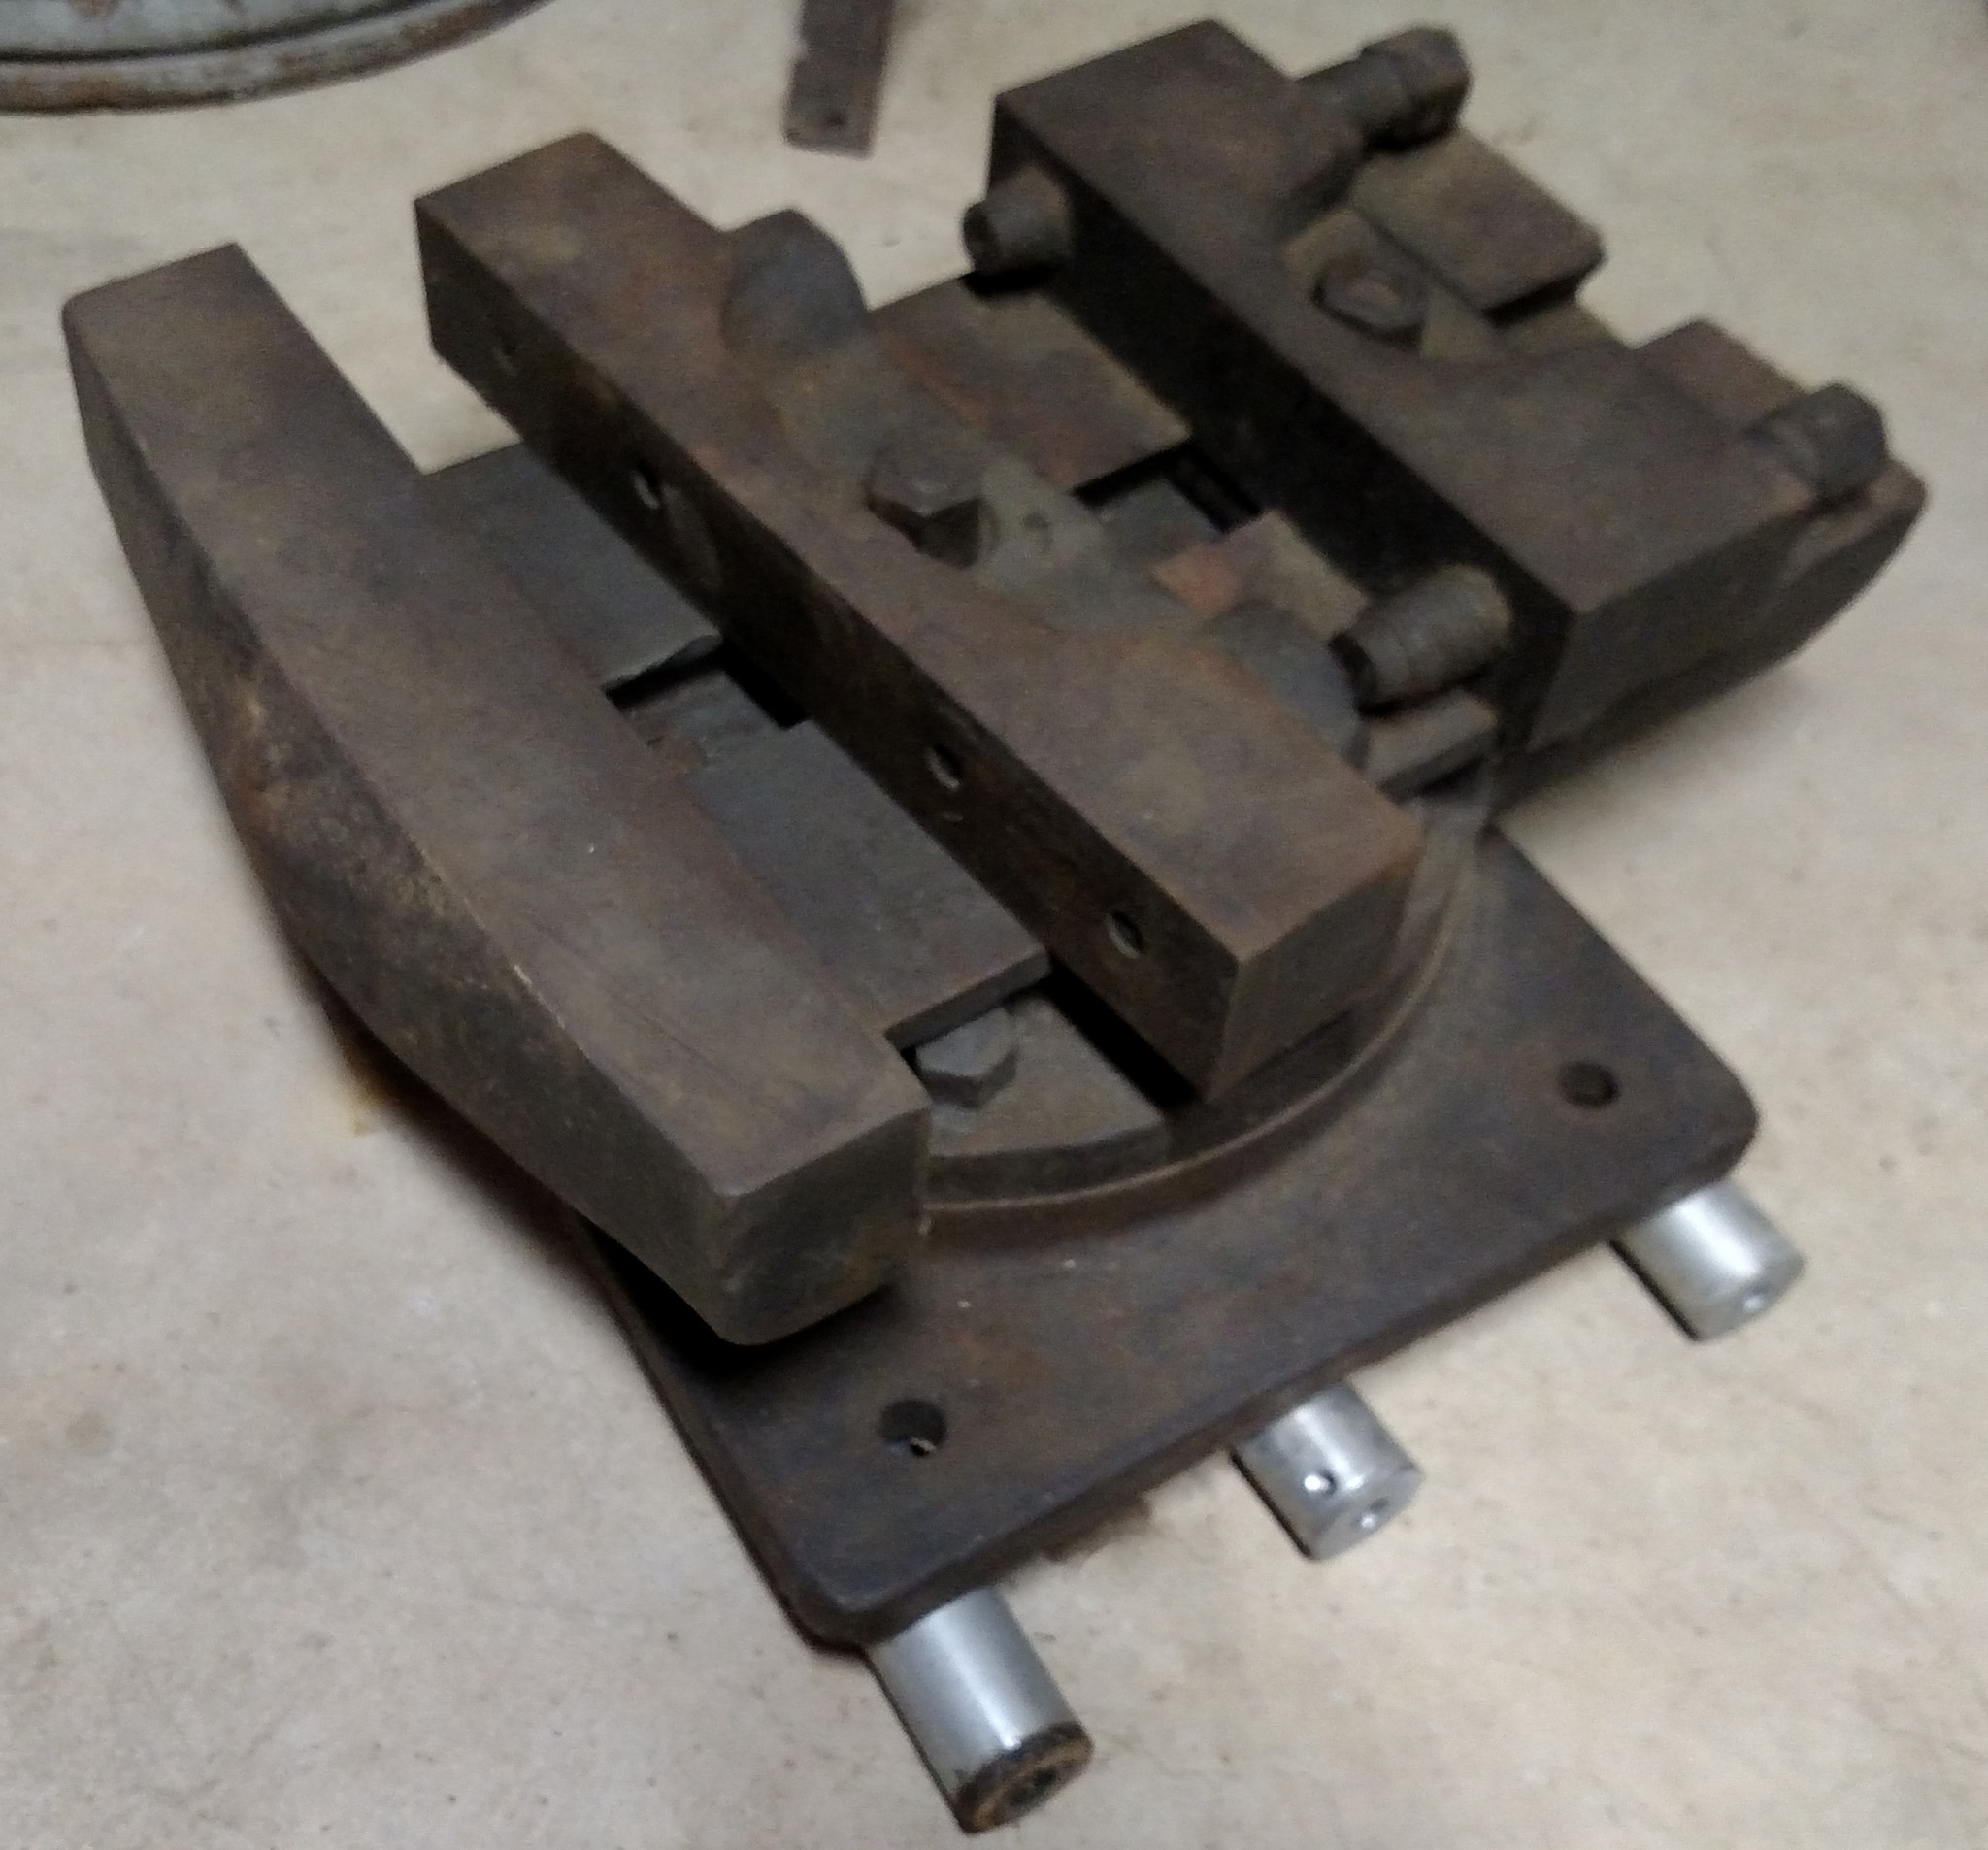 REALLY BIG MACHINE SHOP VISE, for a Mill, Shaper, Mold Maker